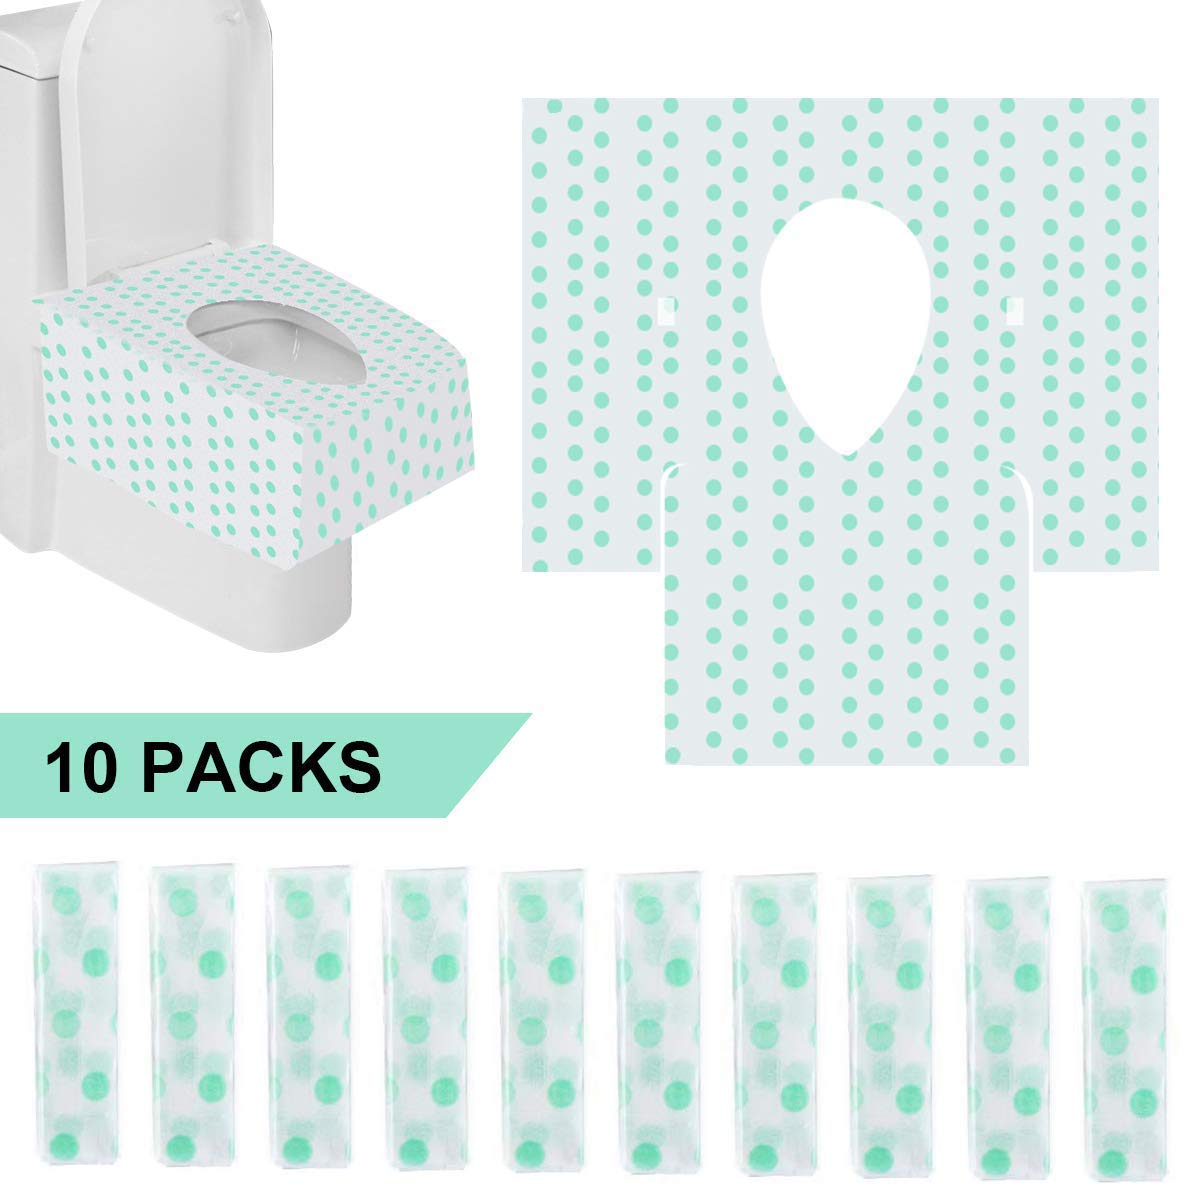 Toilet Seat Covers Disposable Potty Training Seat Covers Orthland-Potty Seat Covers